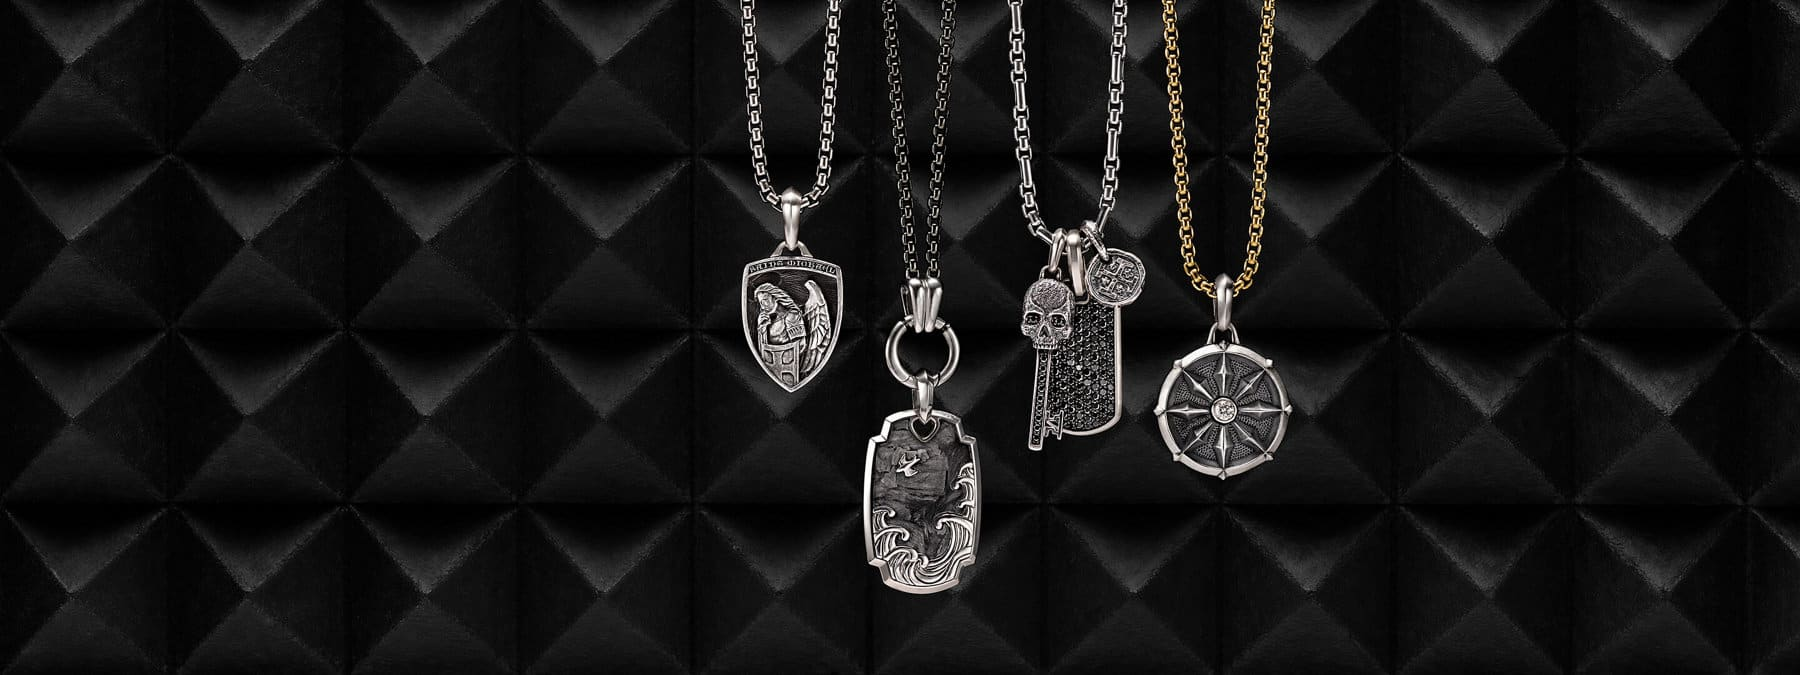 A color photo shows four David Yurman men's box-chain necklaces in sterling silver or darkened stainless steel arranged in a row atop a dark, stone pyramid-patterned surface with stark shadows. Each necklace is strung with one or three David Yurman men's amulets crafted from sterling silver. From left to right are a Saint Michael amulet, a Waves tag with forged carbon, a Petrvs skull pendant with pave black diamonds, a Streamline tag with pavé black diamonds, a Shipwreck coin amulet and a Petrvs sterling silver dharma wheel amulet with a single white diamond.